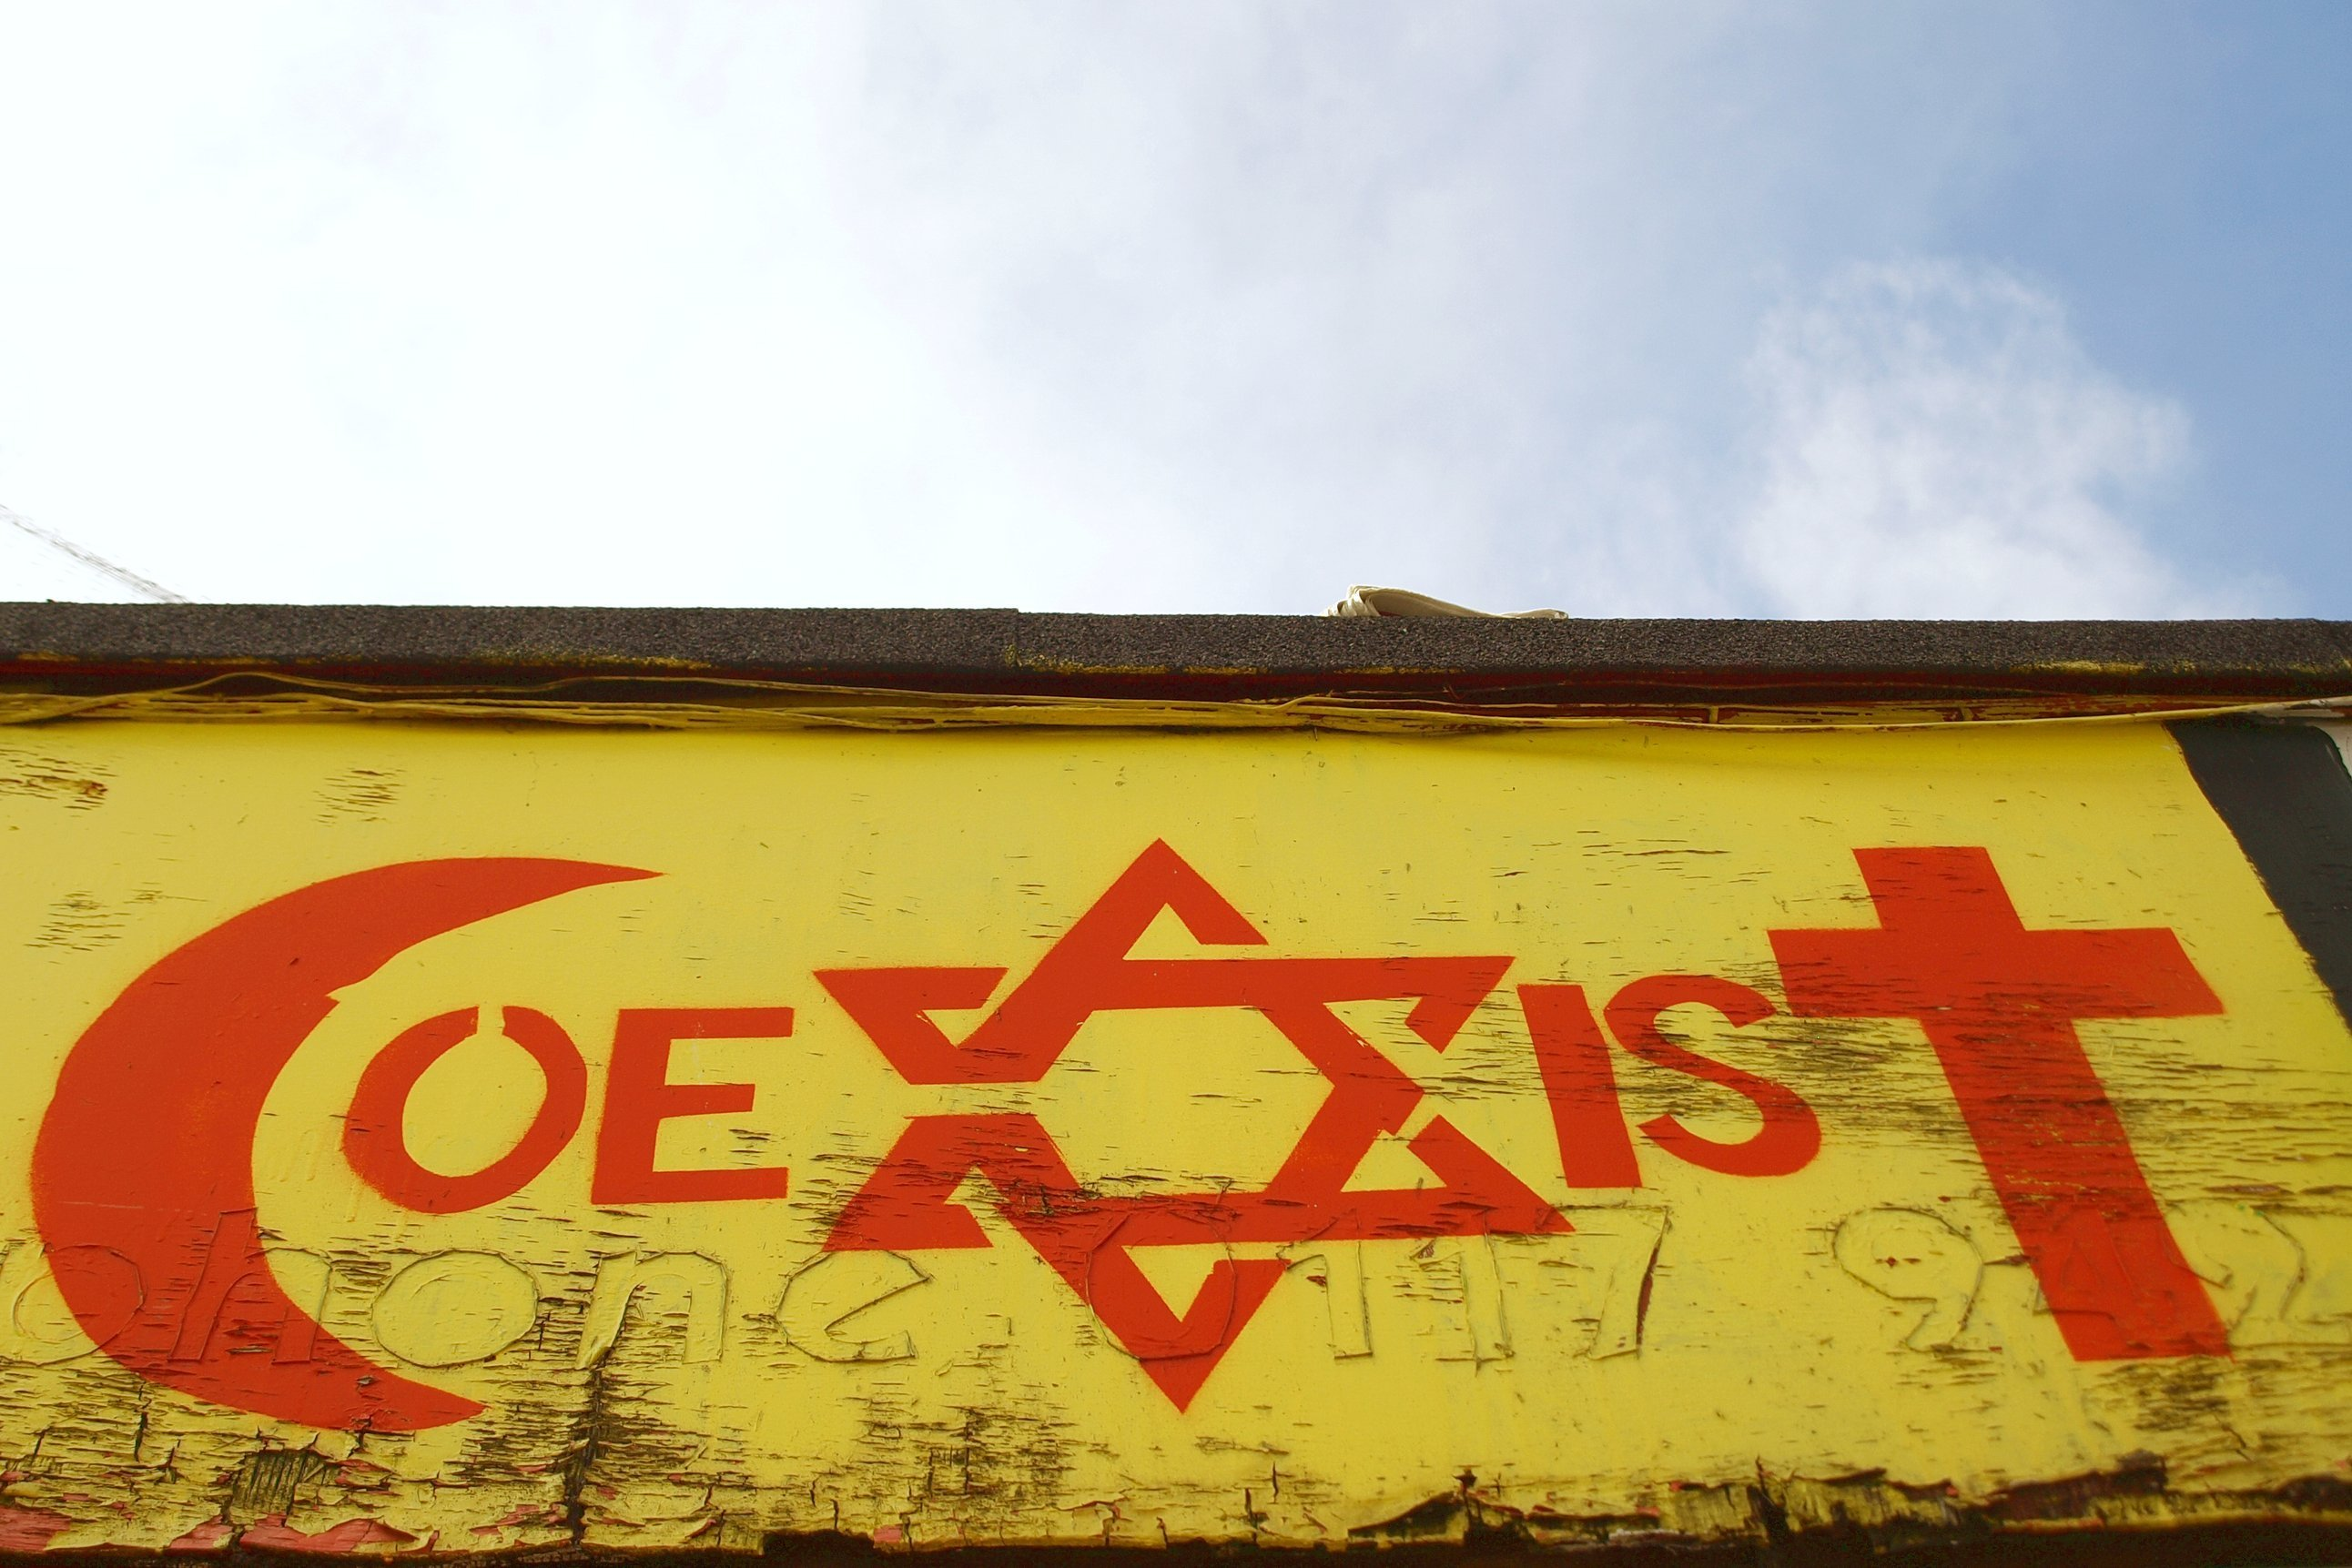 Coexist sign.